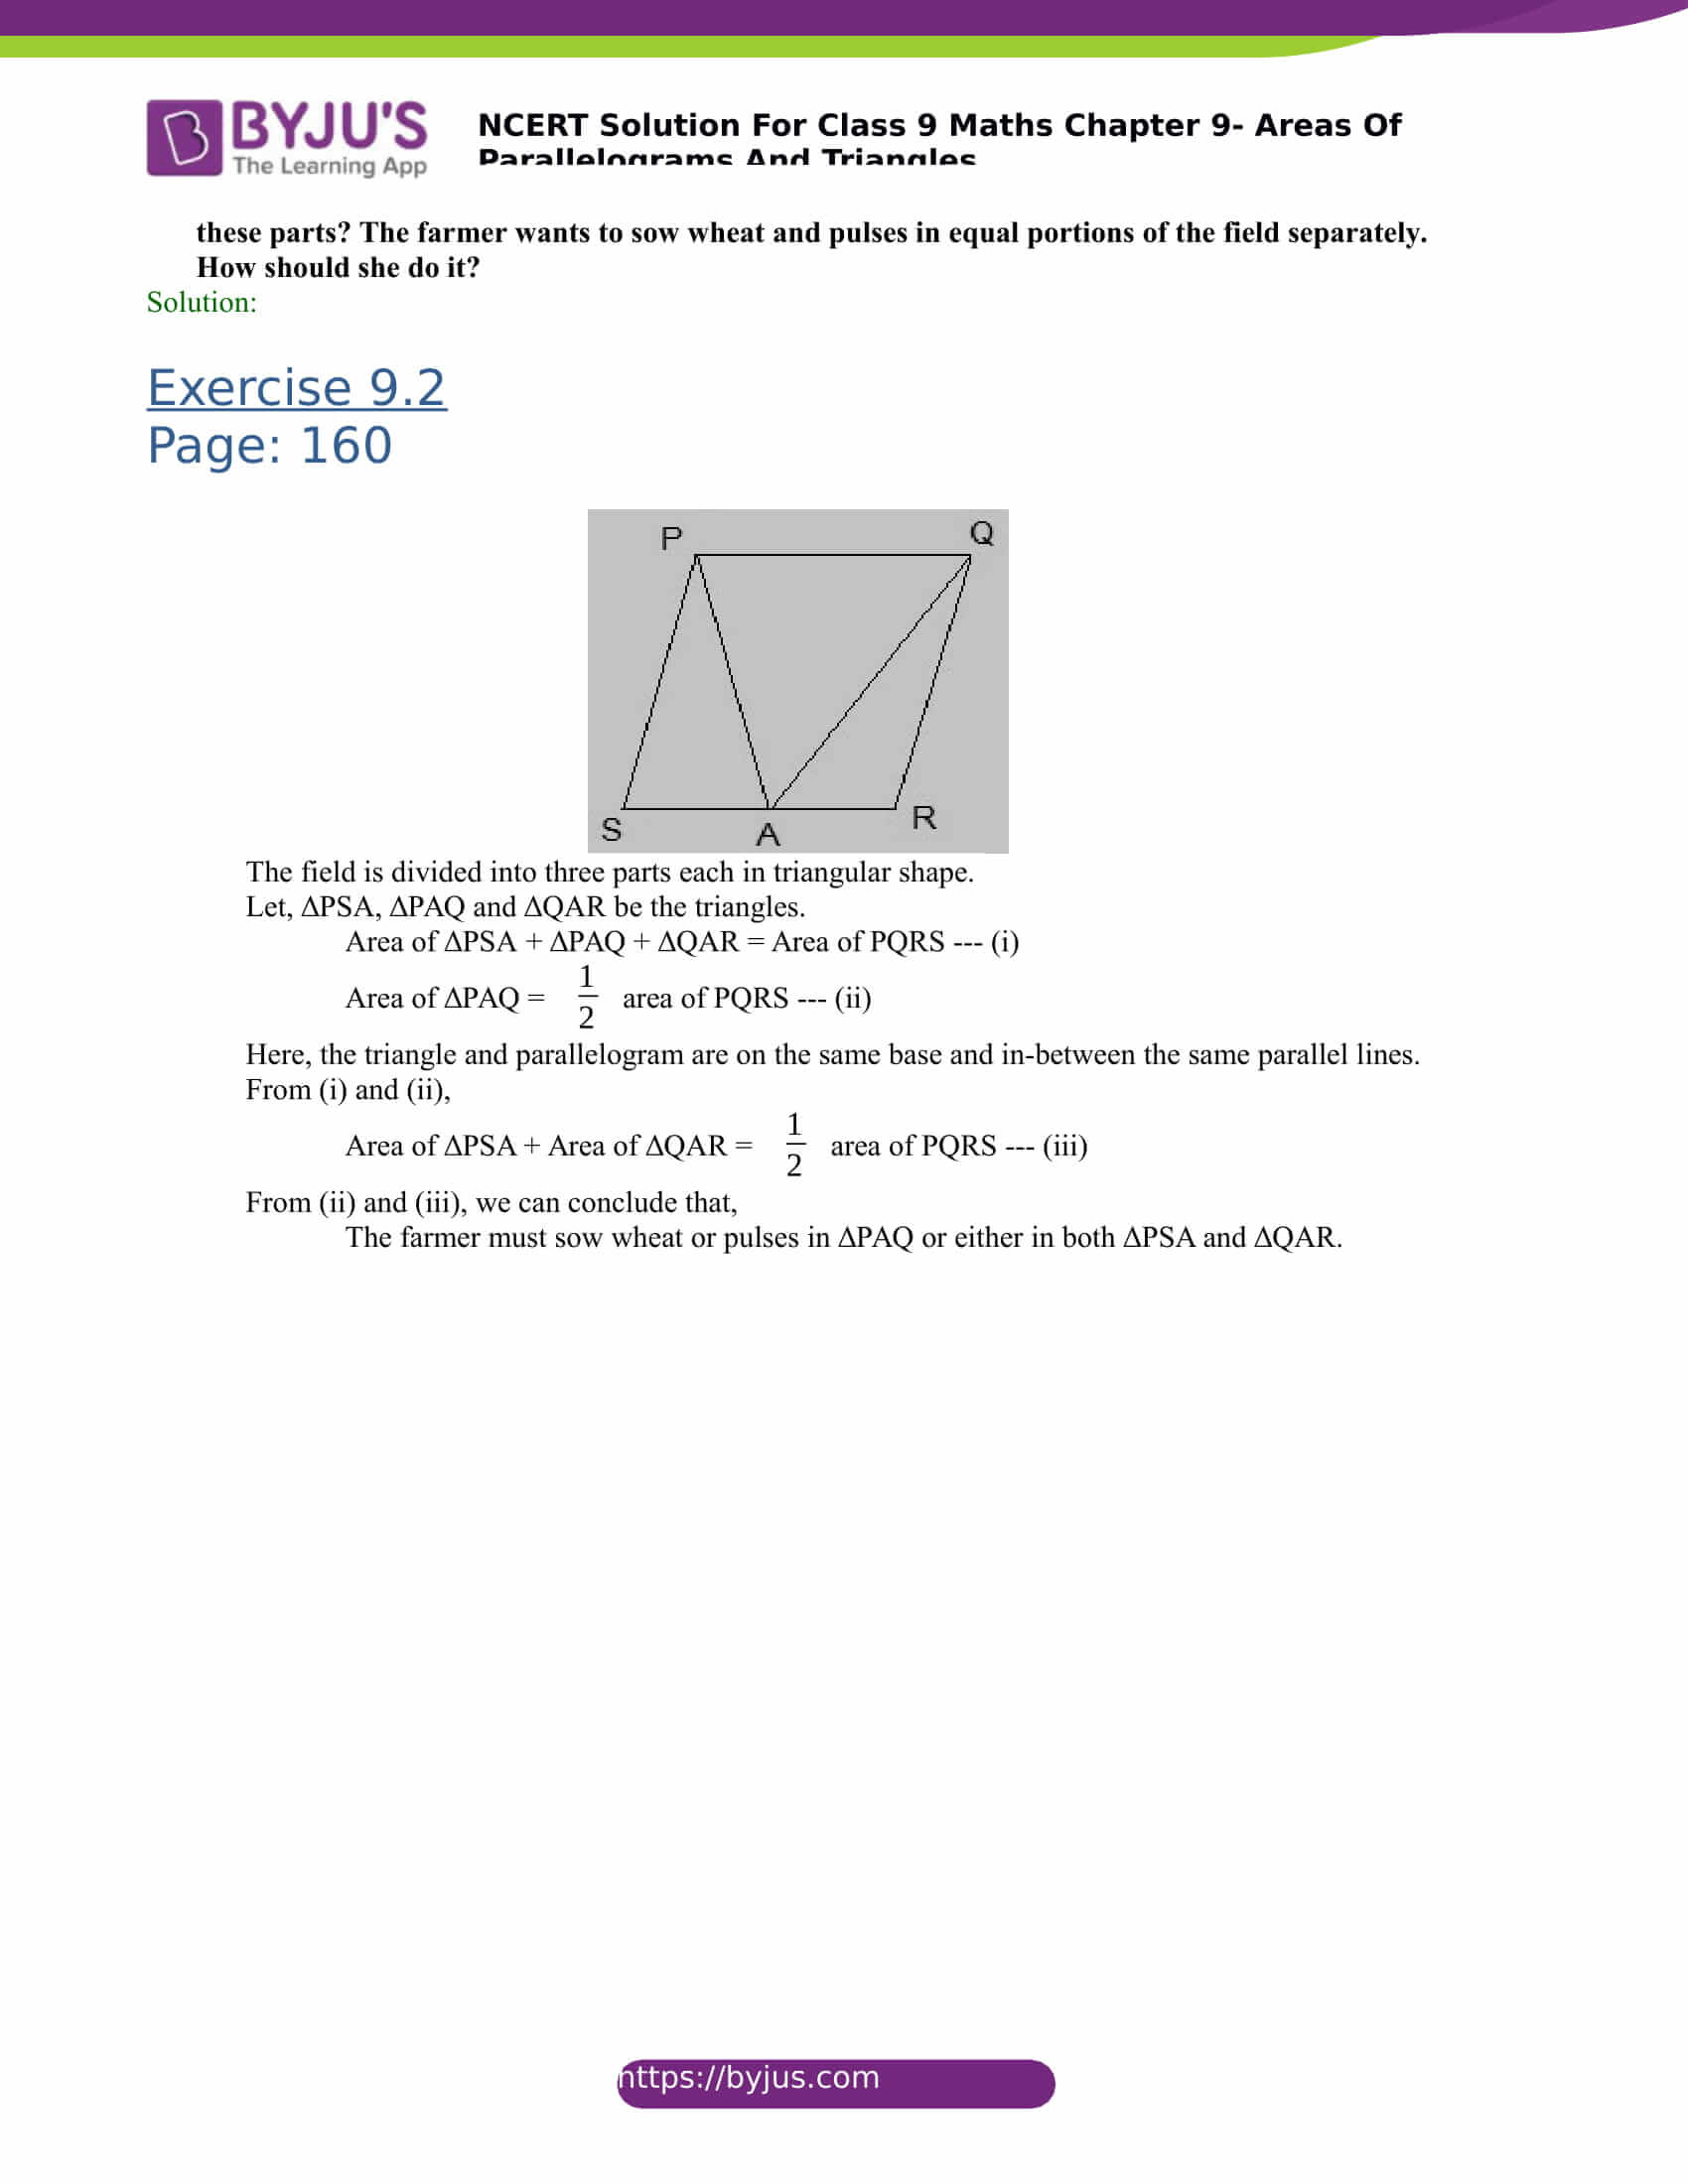 NCERT Solutions for class 9 Maths Chapter 9 Areas of parallelograms and triangles Part 6